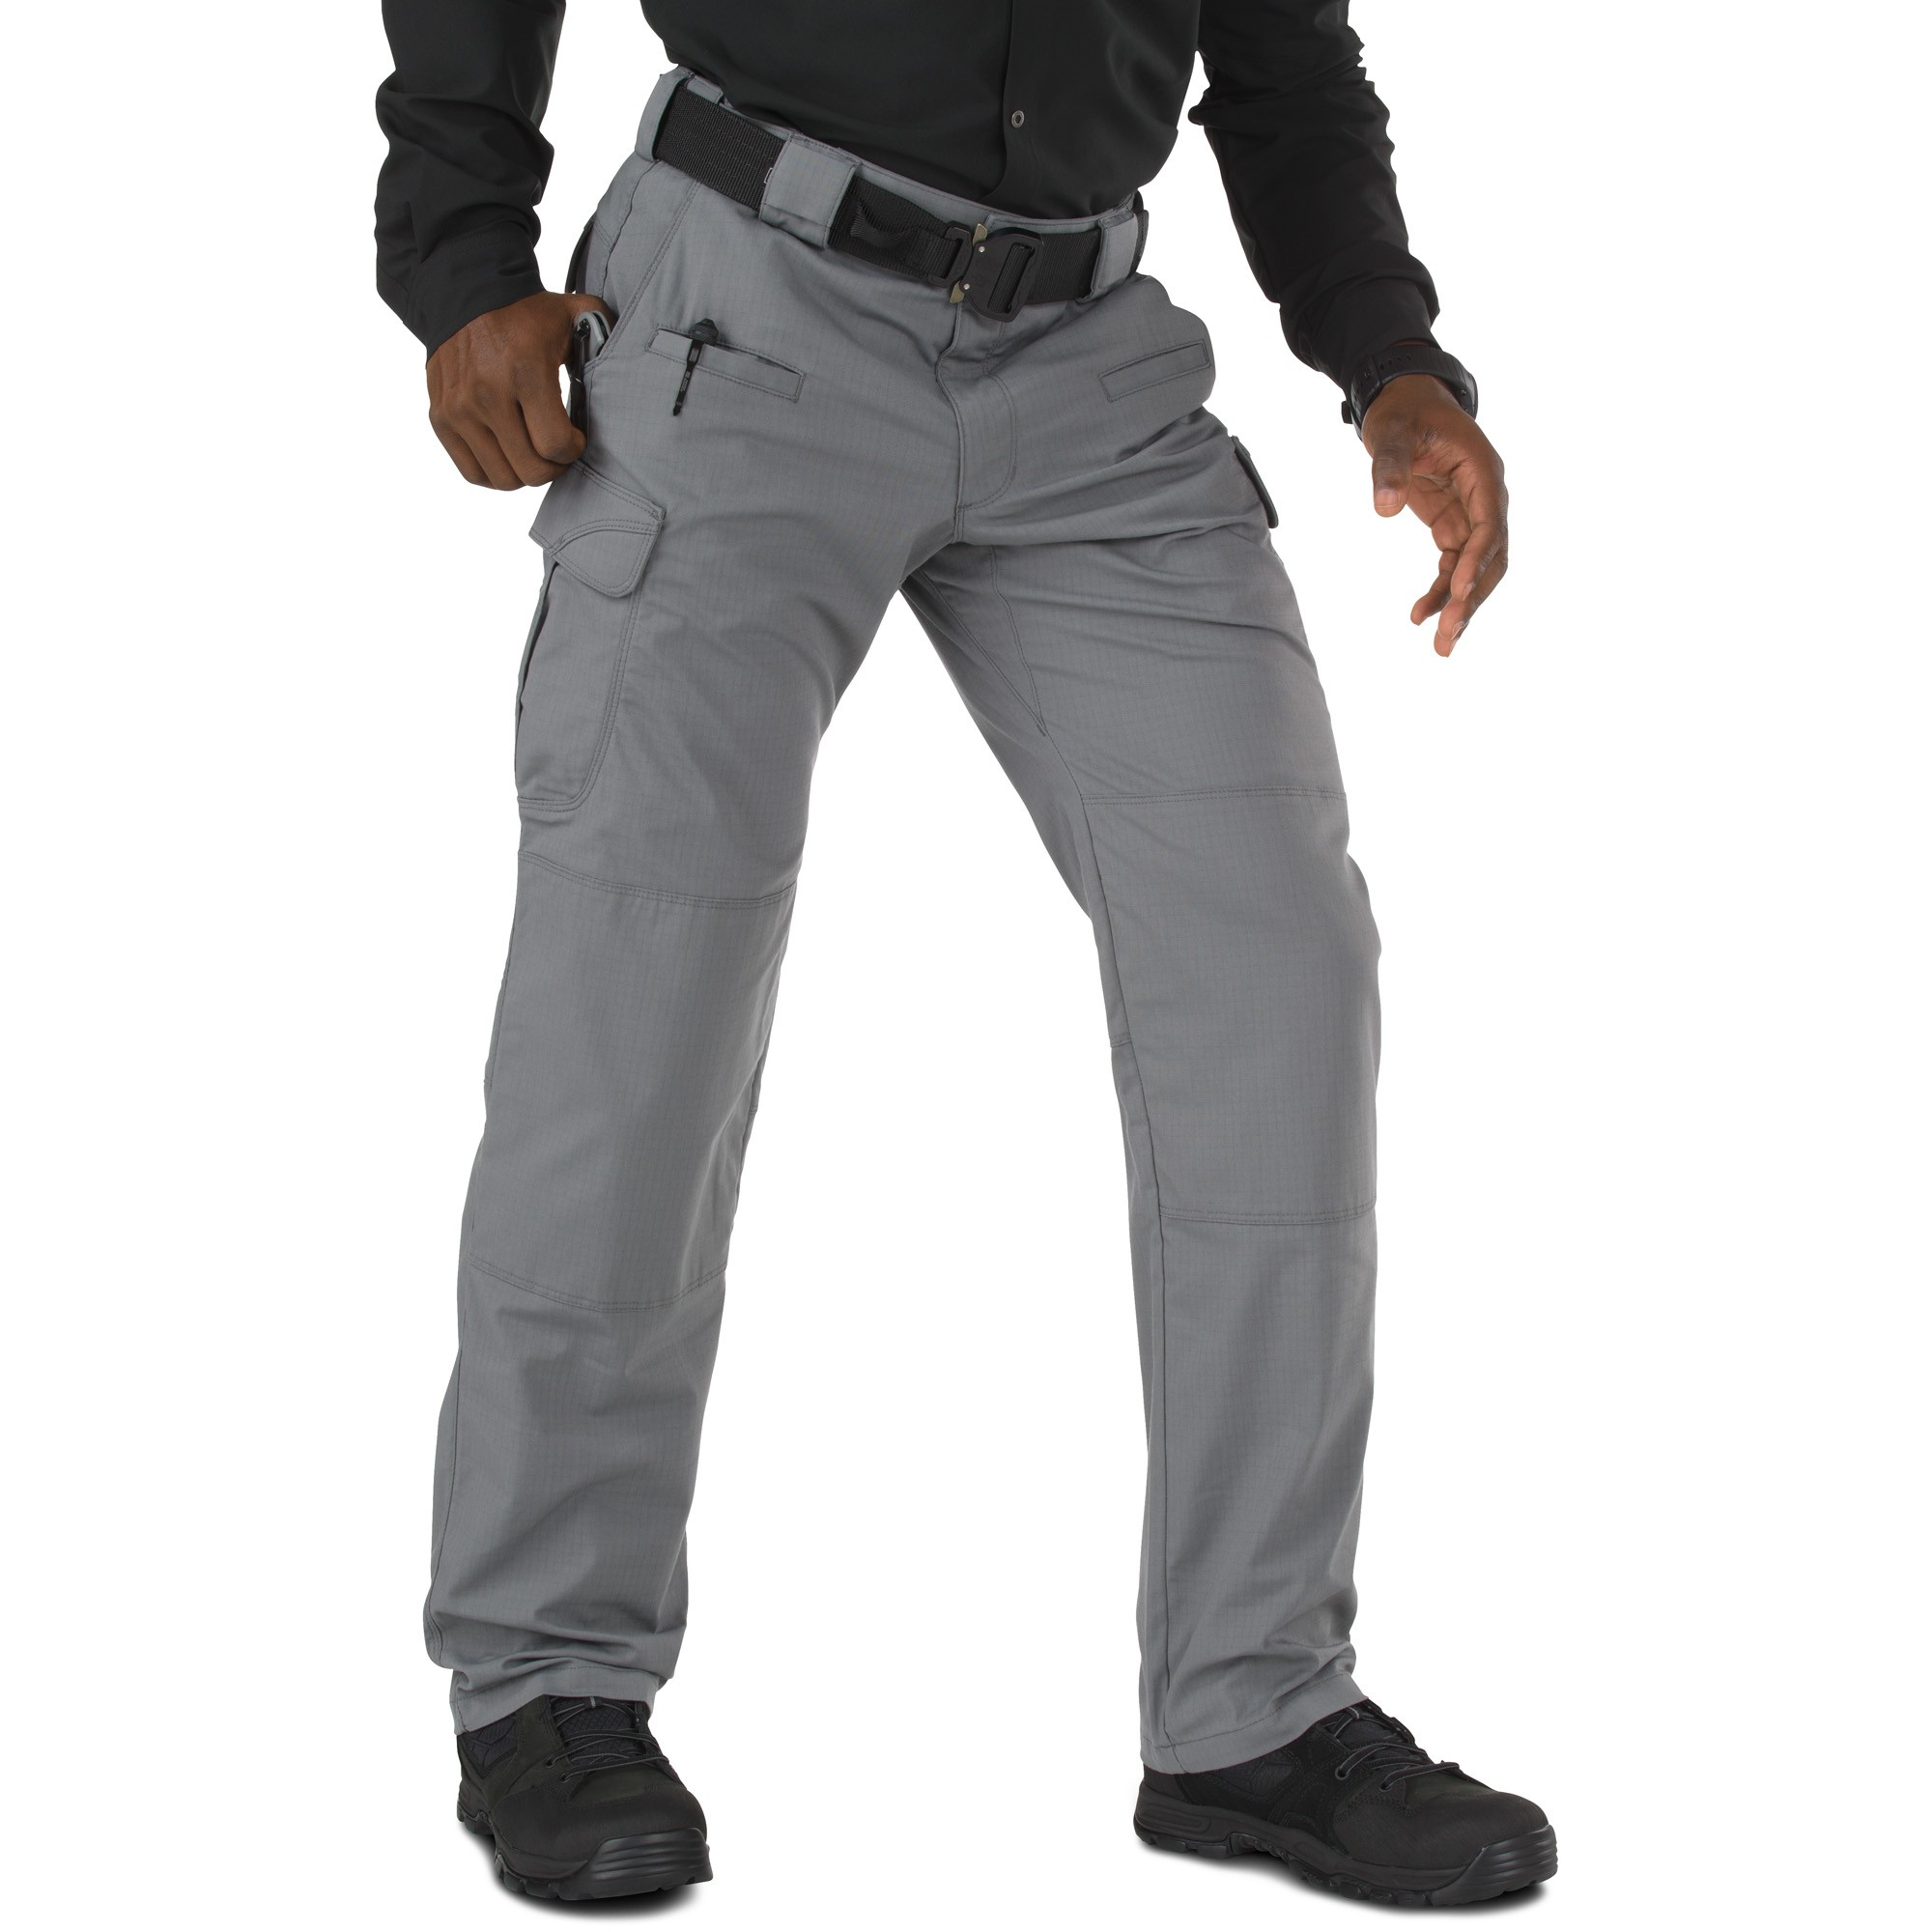 women s 5.11 tactical cargo pants photo - 1